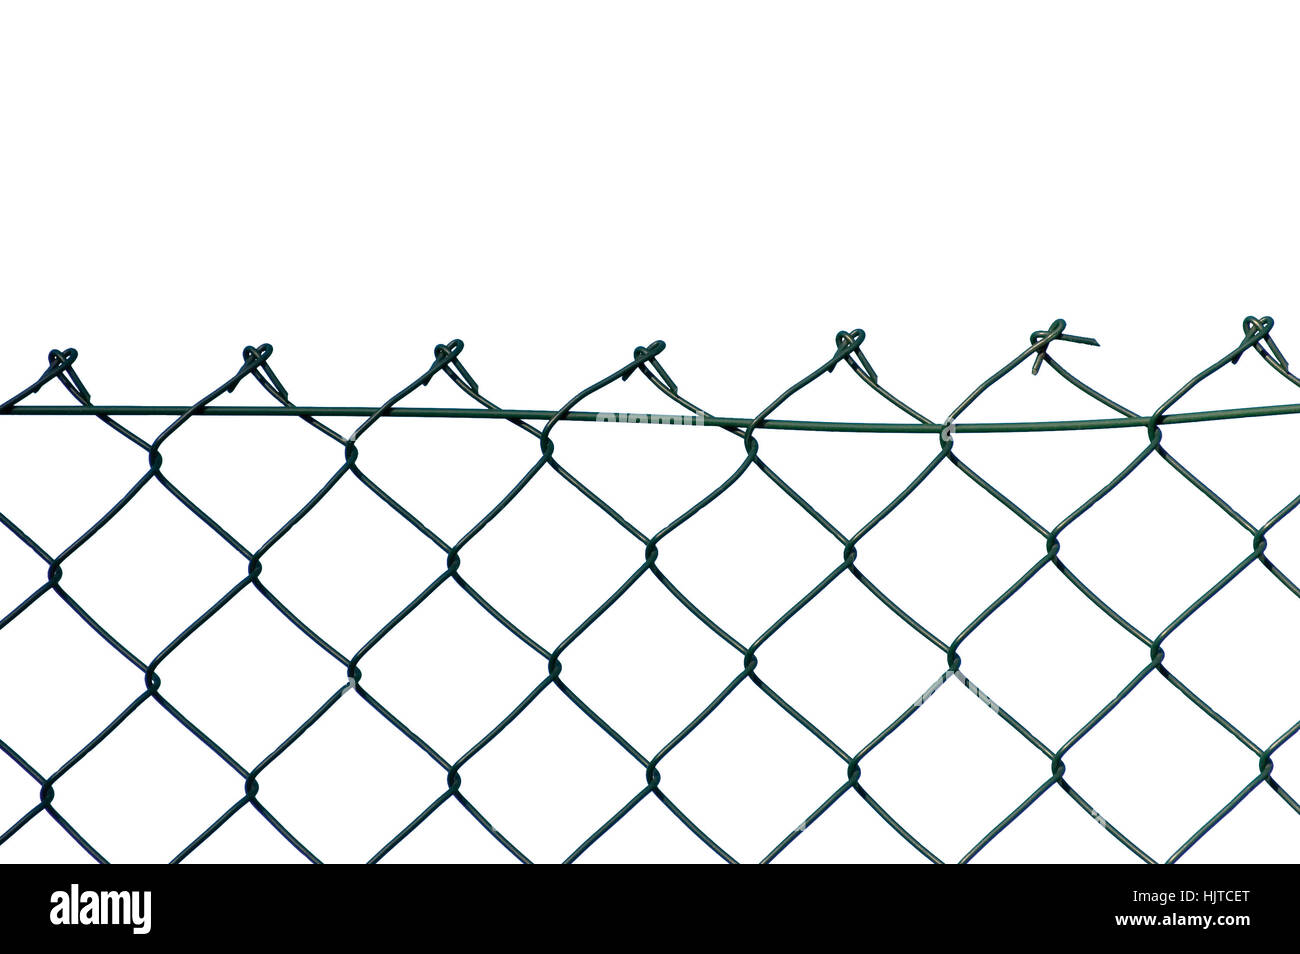 New wire security fence, isolated horizontal closeup - Stock Image